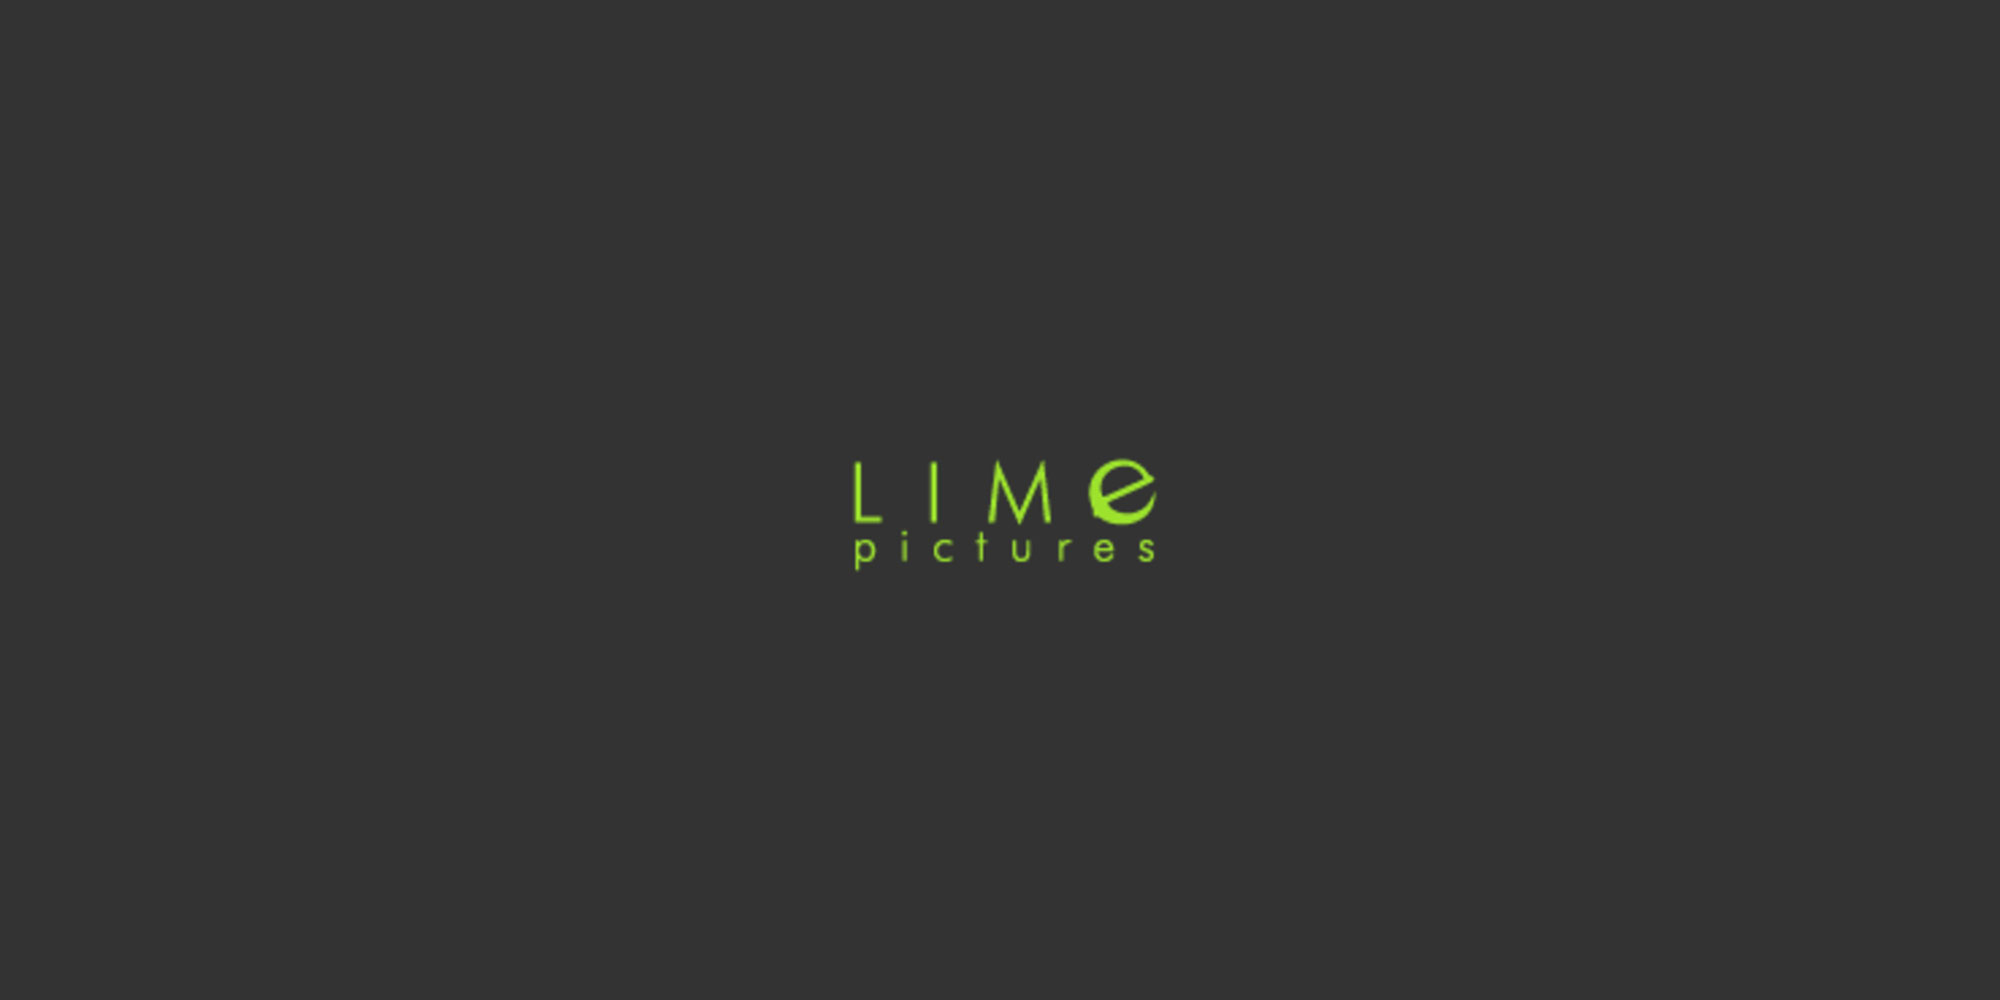 lime-pictures.jpg